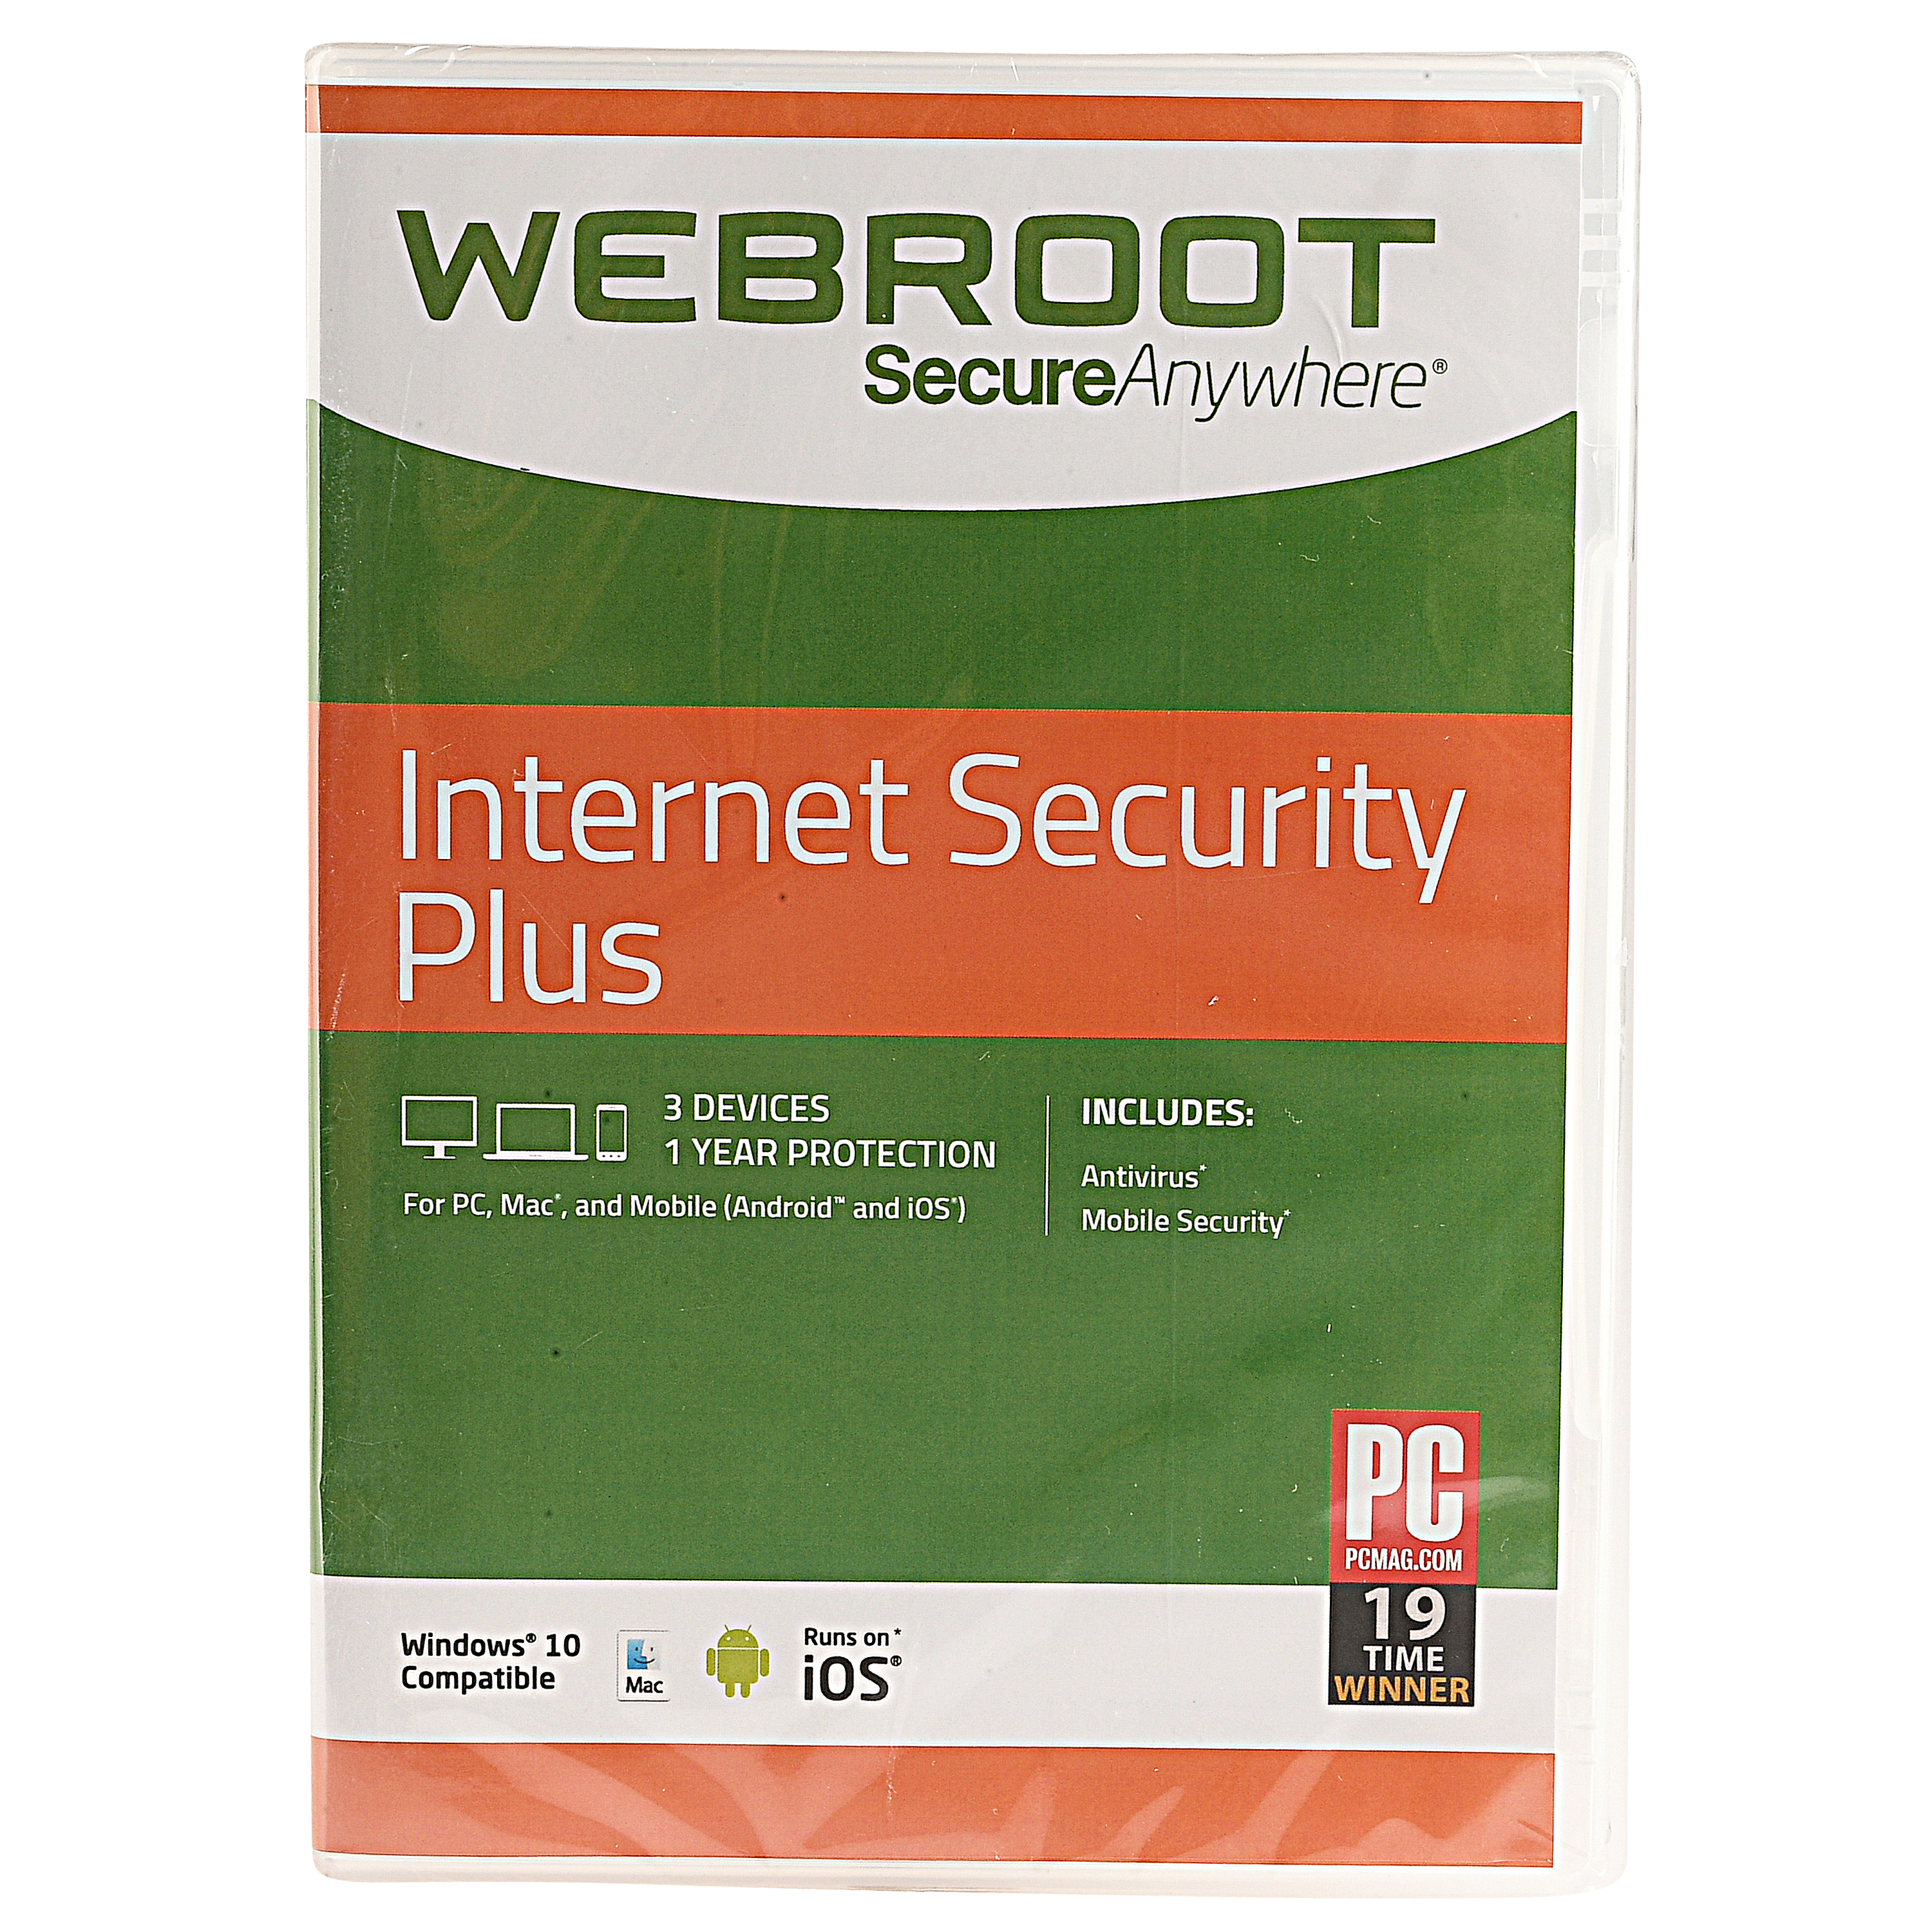 WebRoot Secure Anywhere Internet Security Plus Software